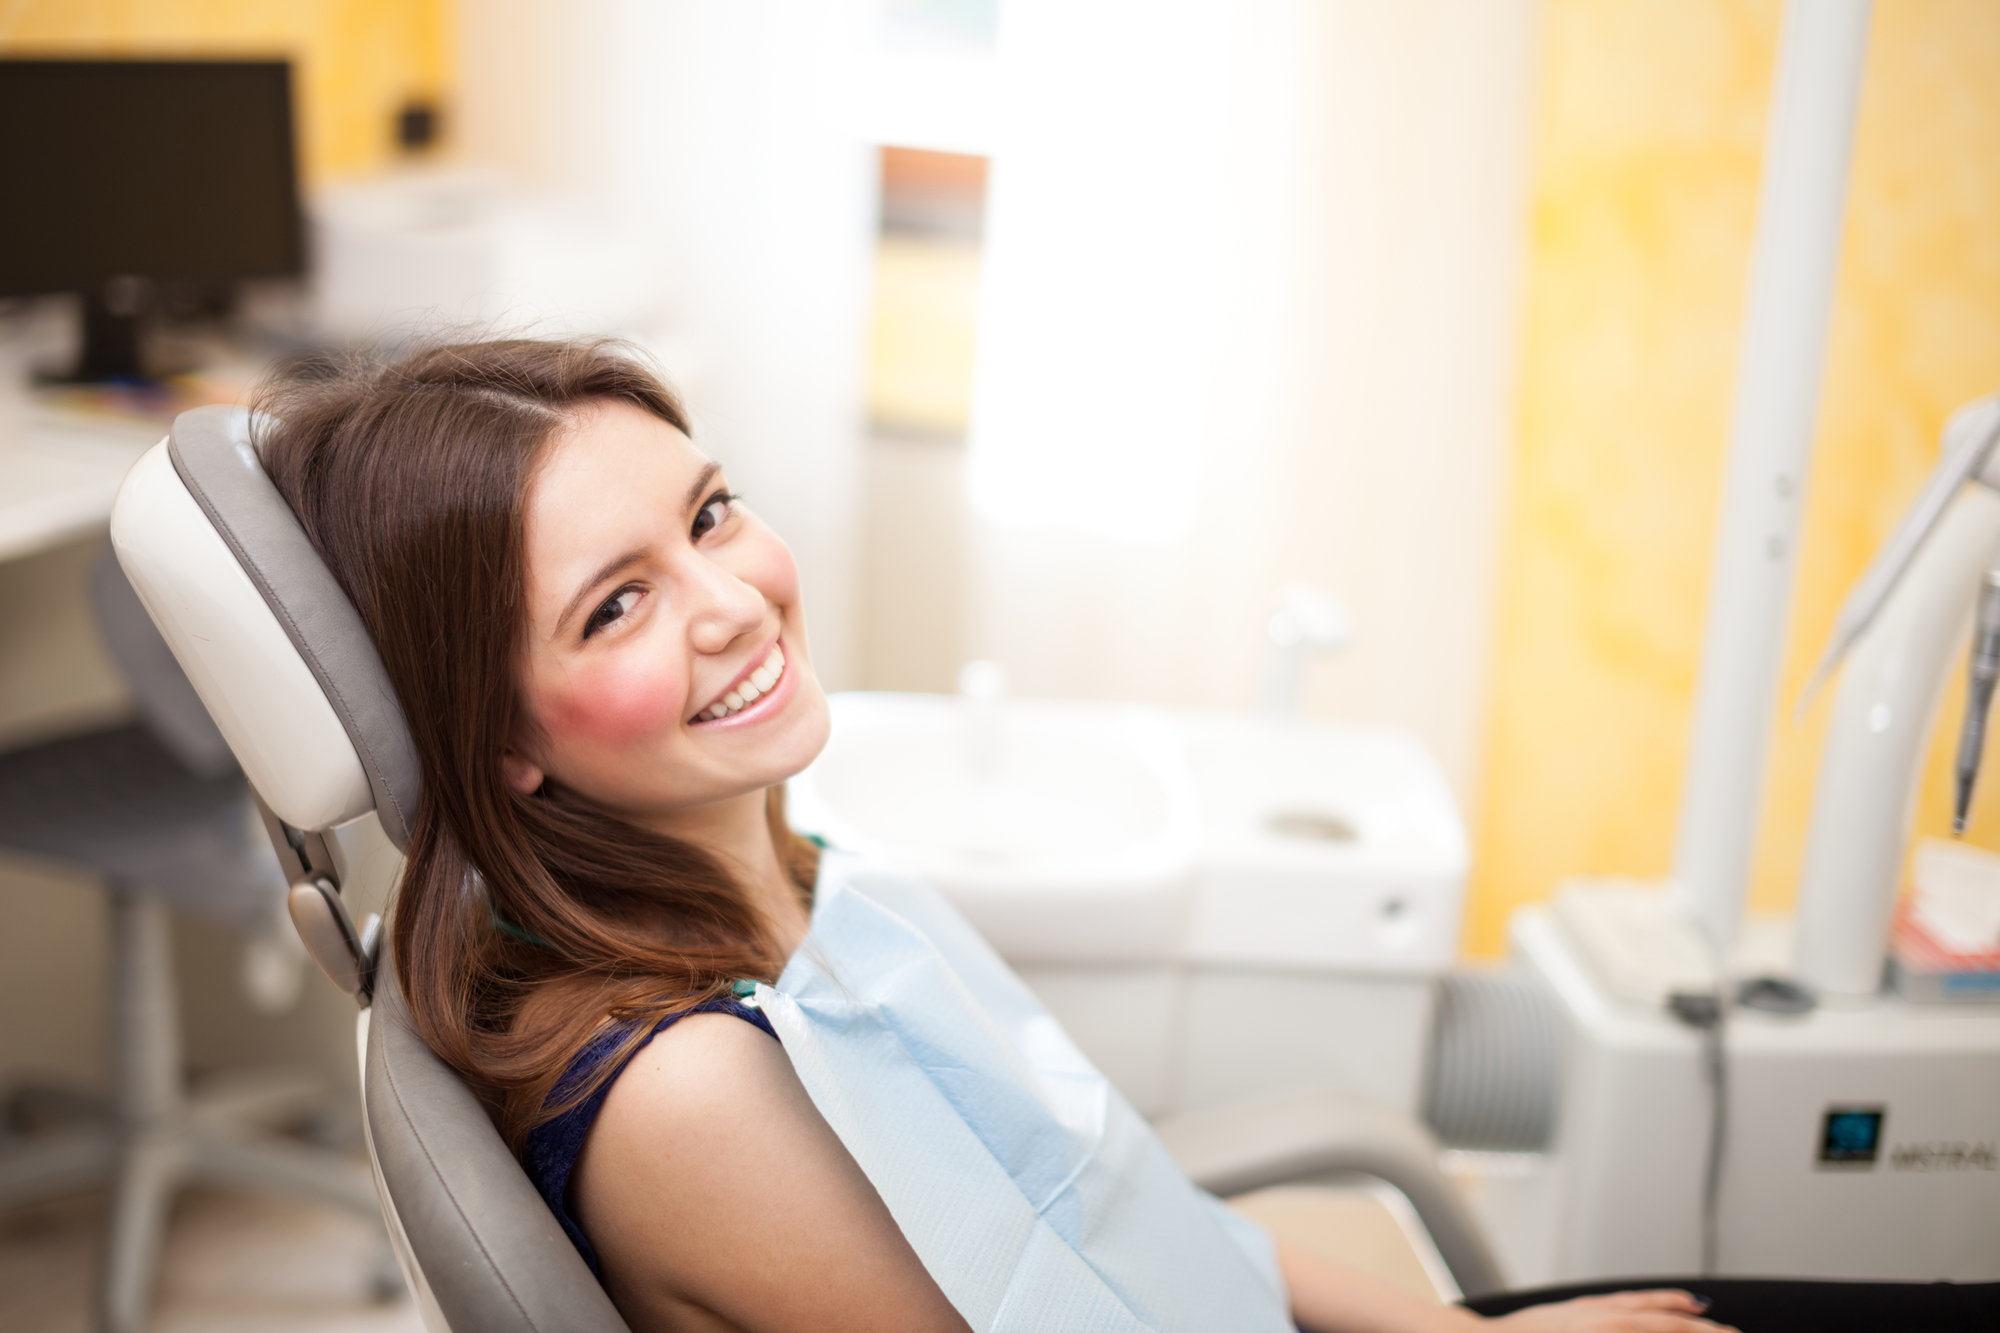 who offers cosmetic dentist miami?